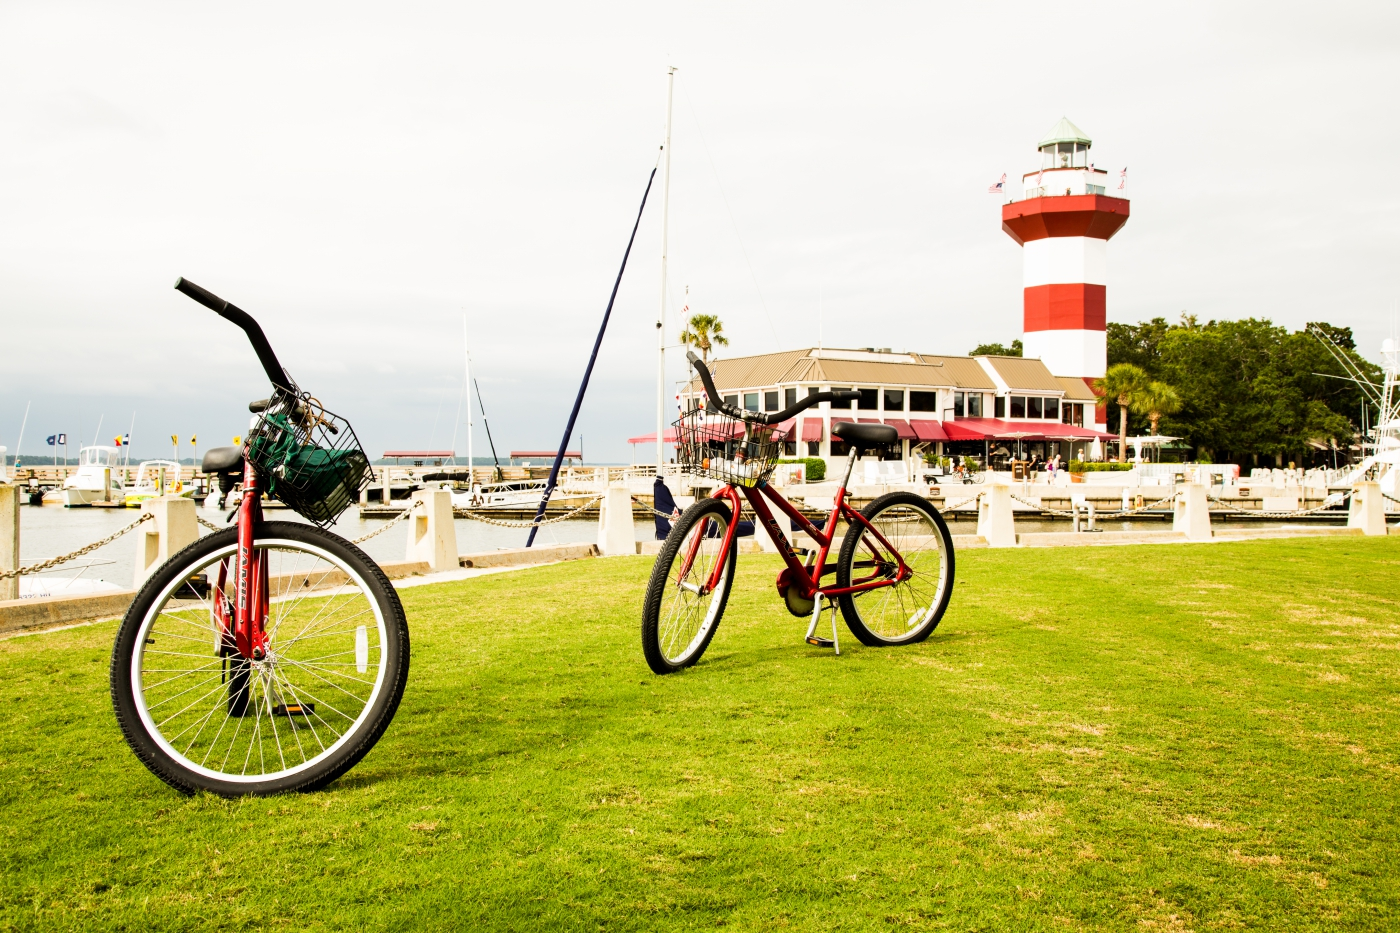 Rent a bicycle and explore the coast!